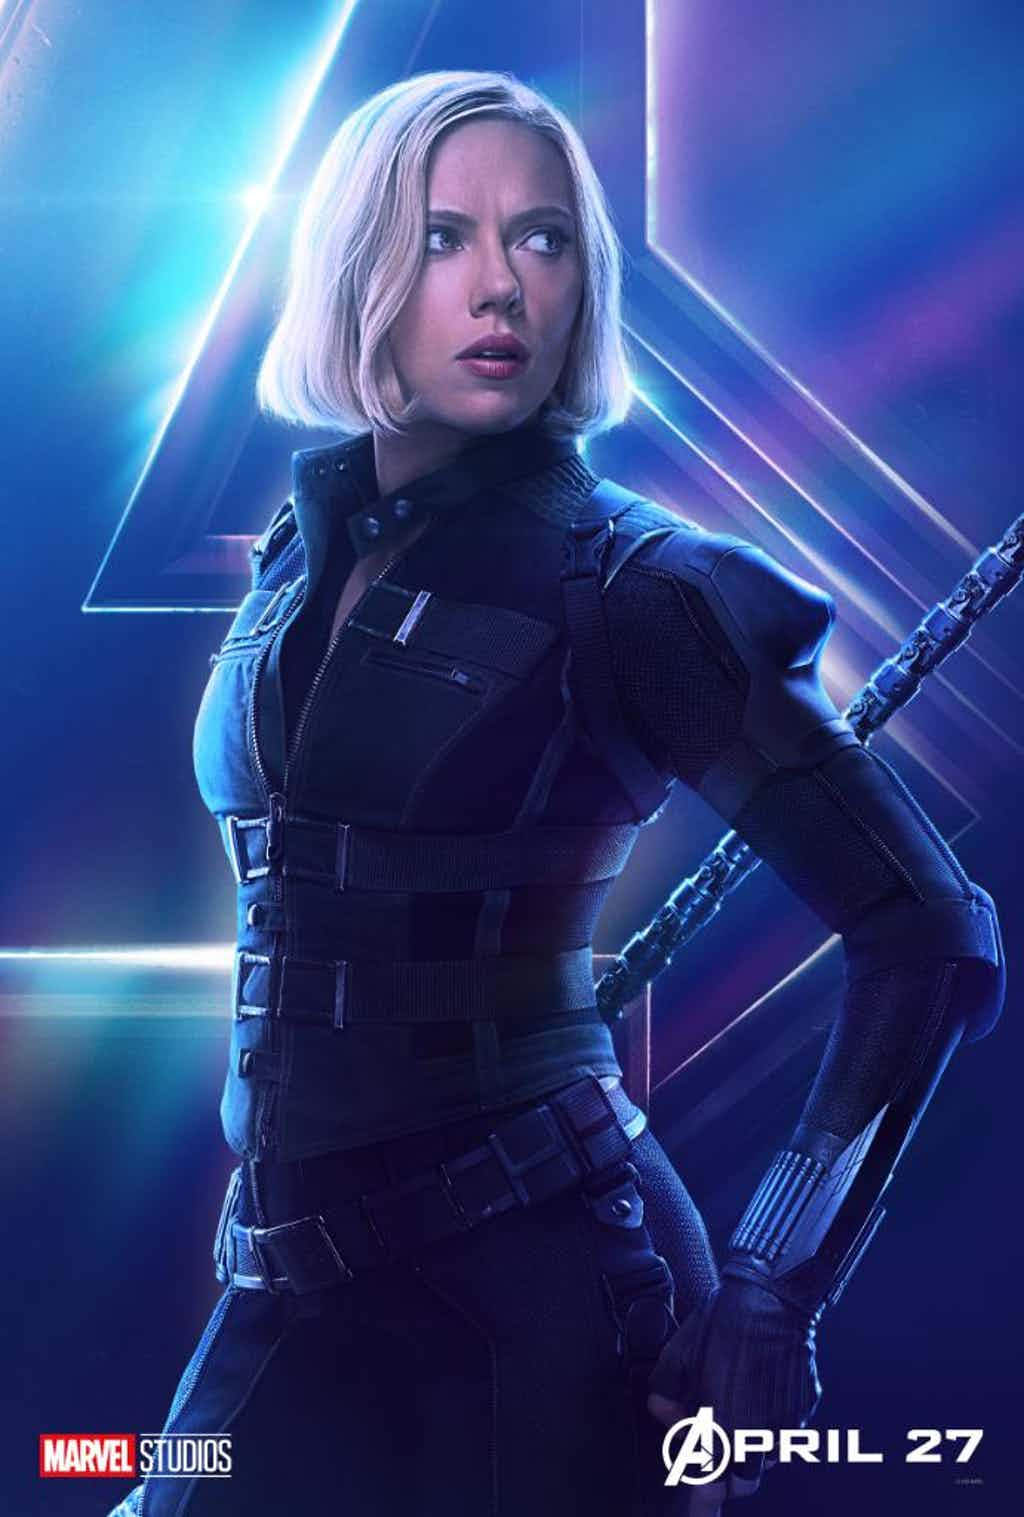 Black Widow Cast Release Date Plot And Trailer For The